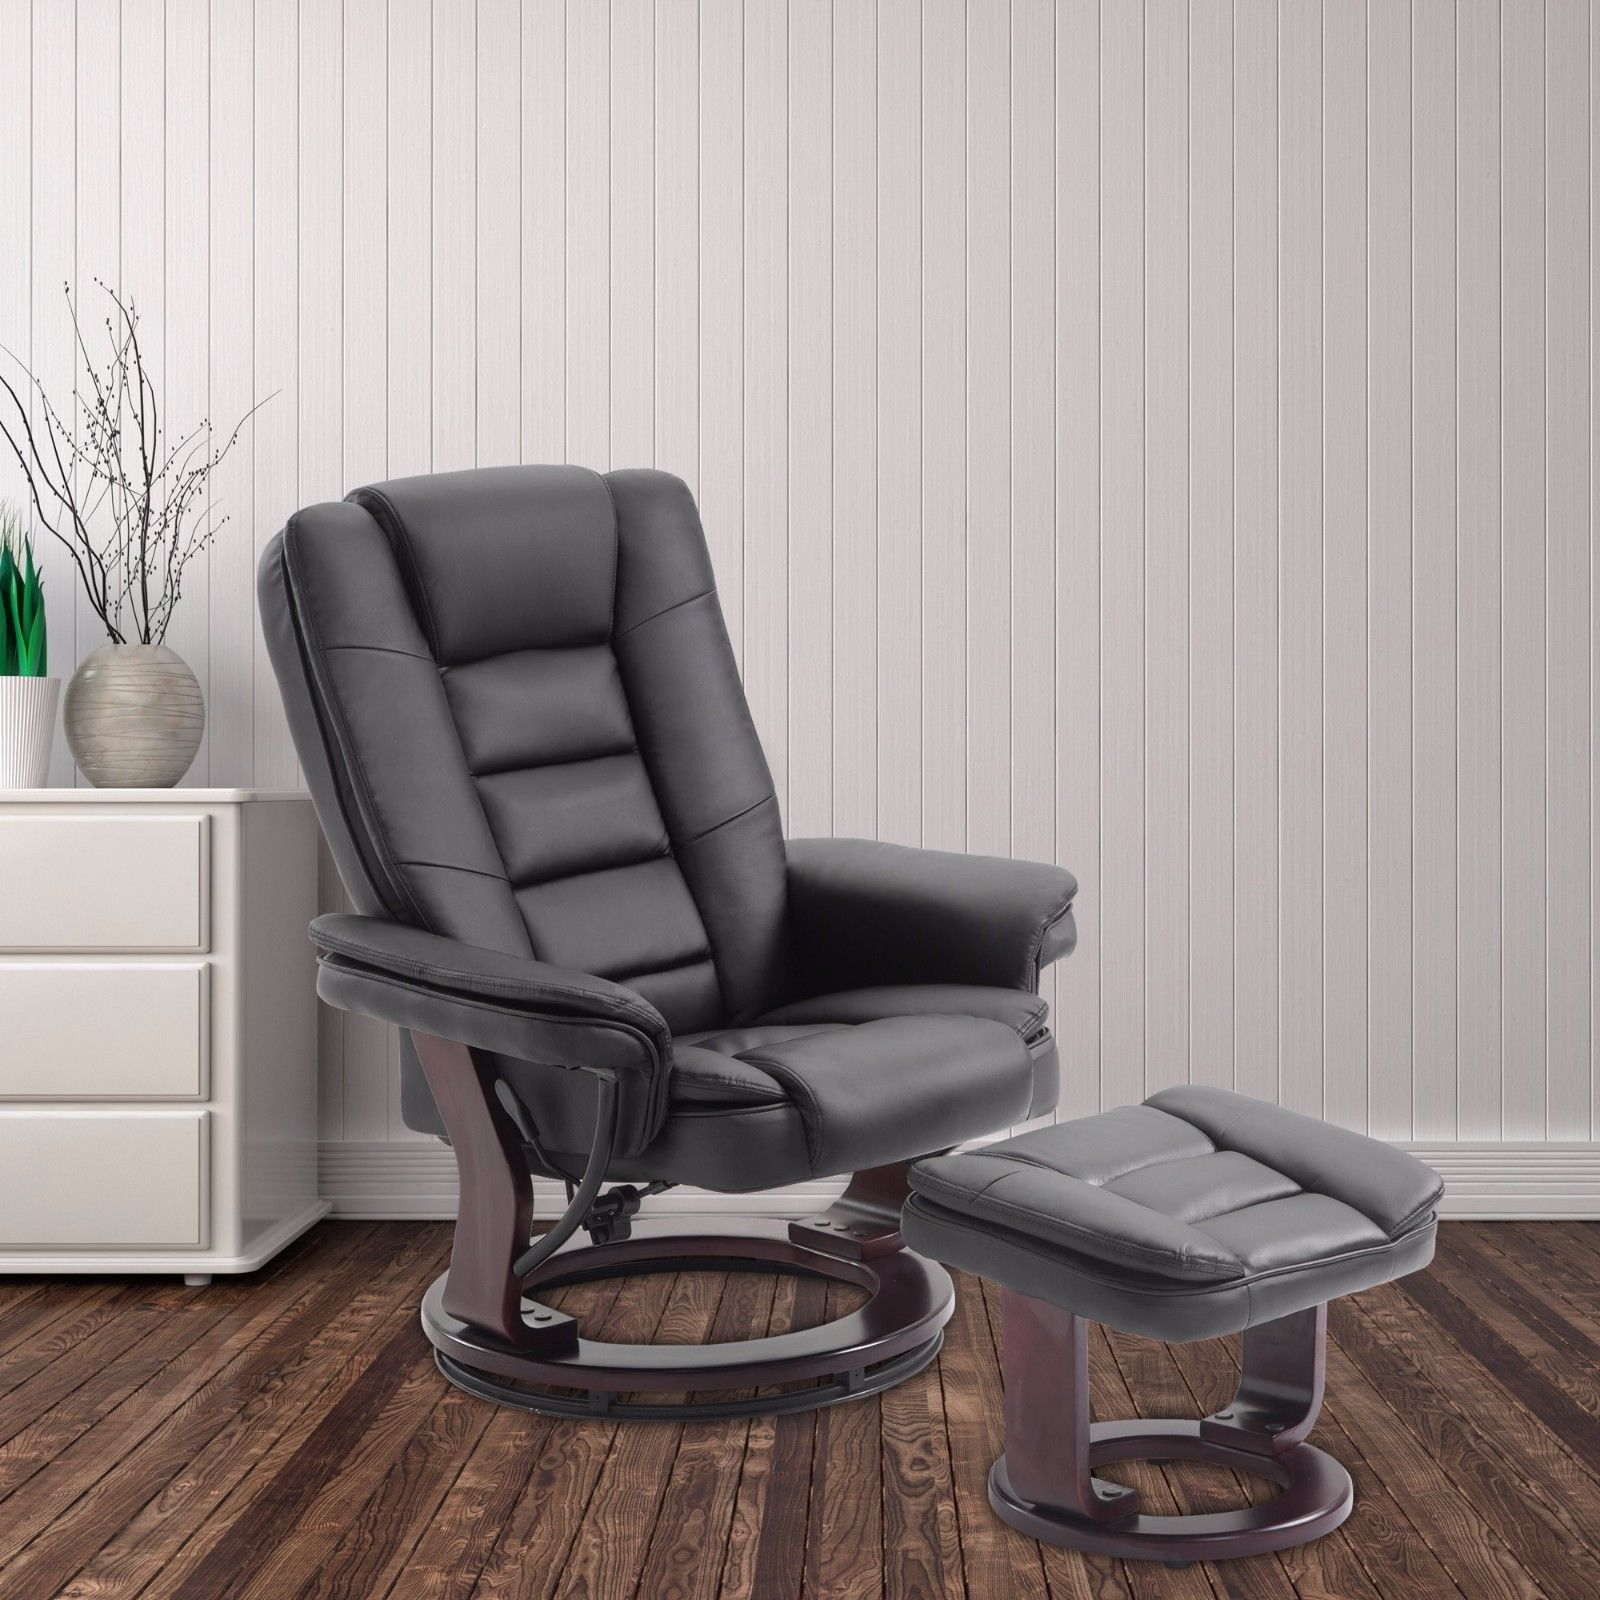 Recliner Chair and Ottoman Swivel Lounge Leisure Leather Living Room ...